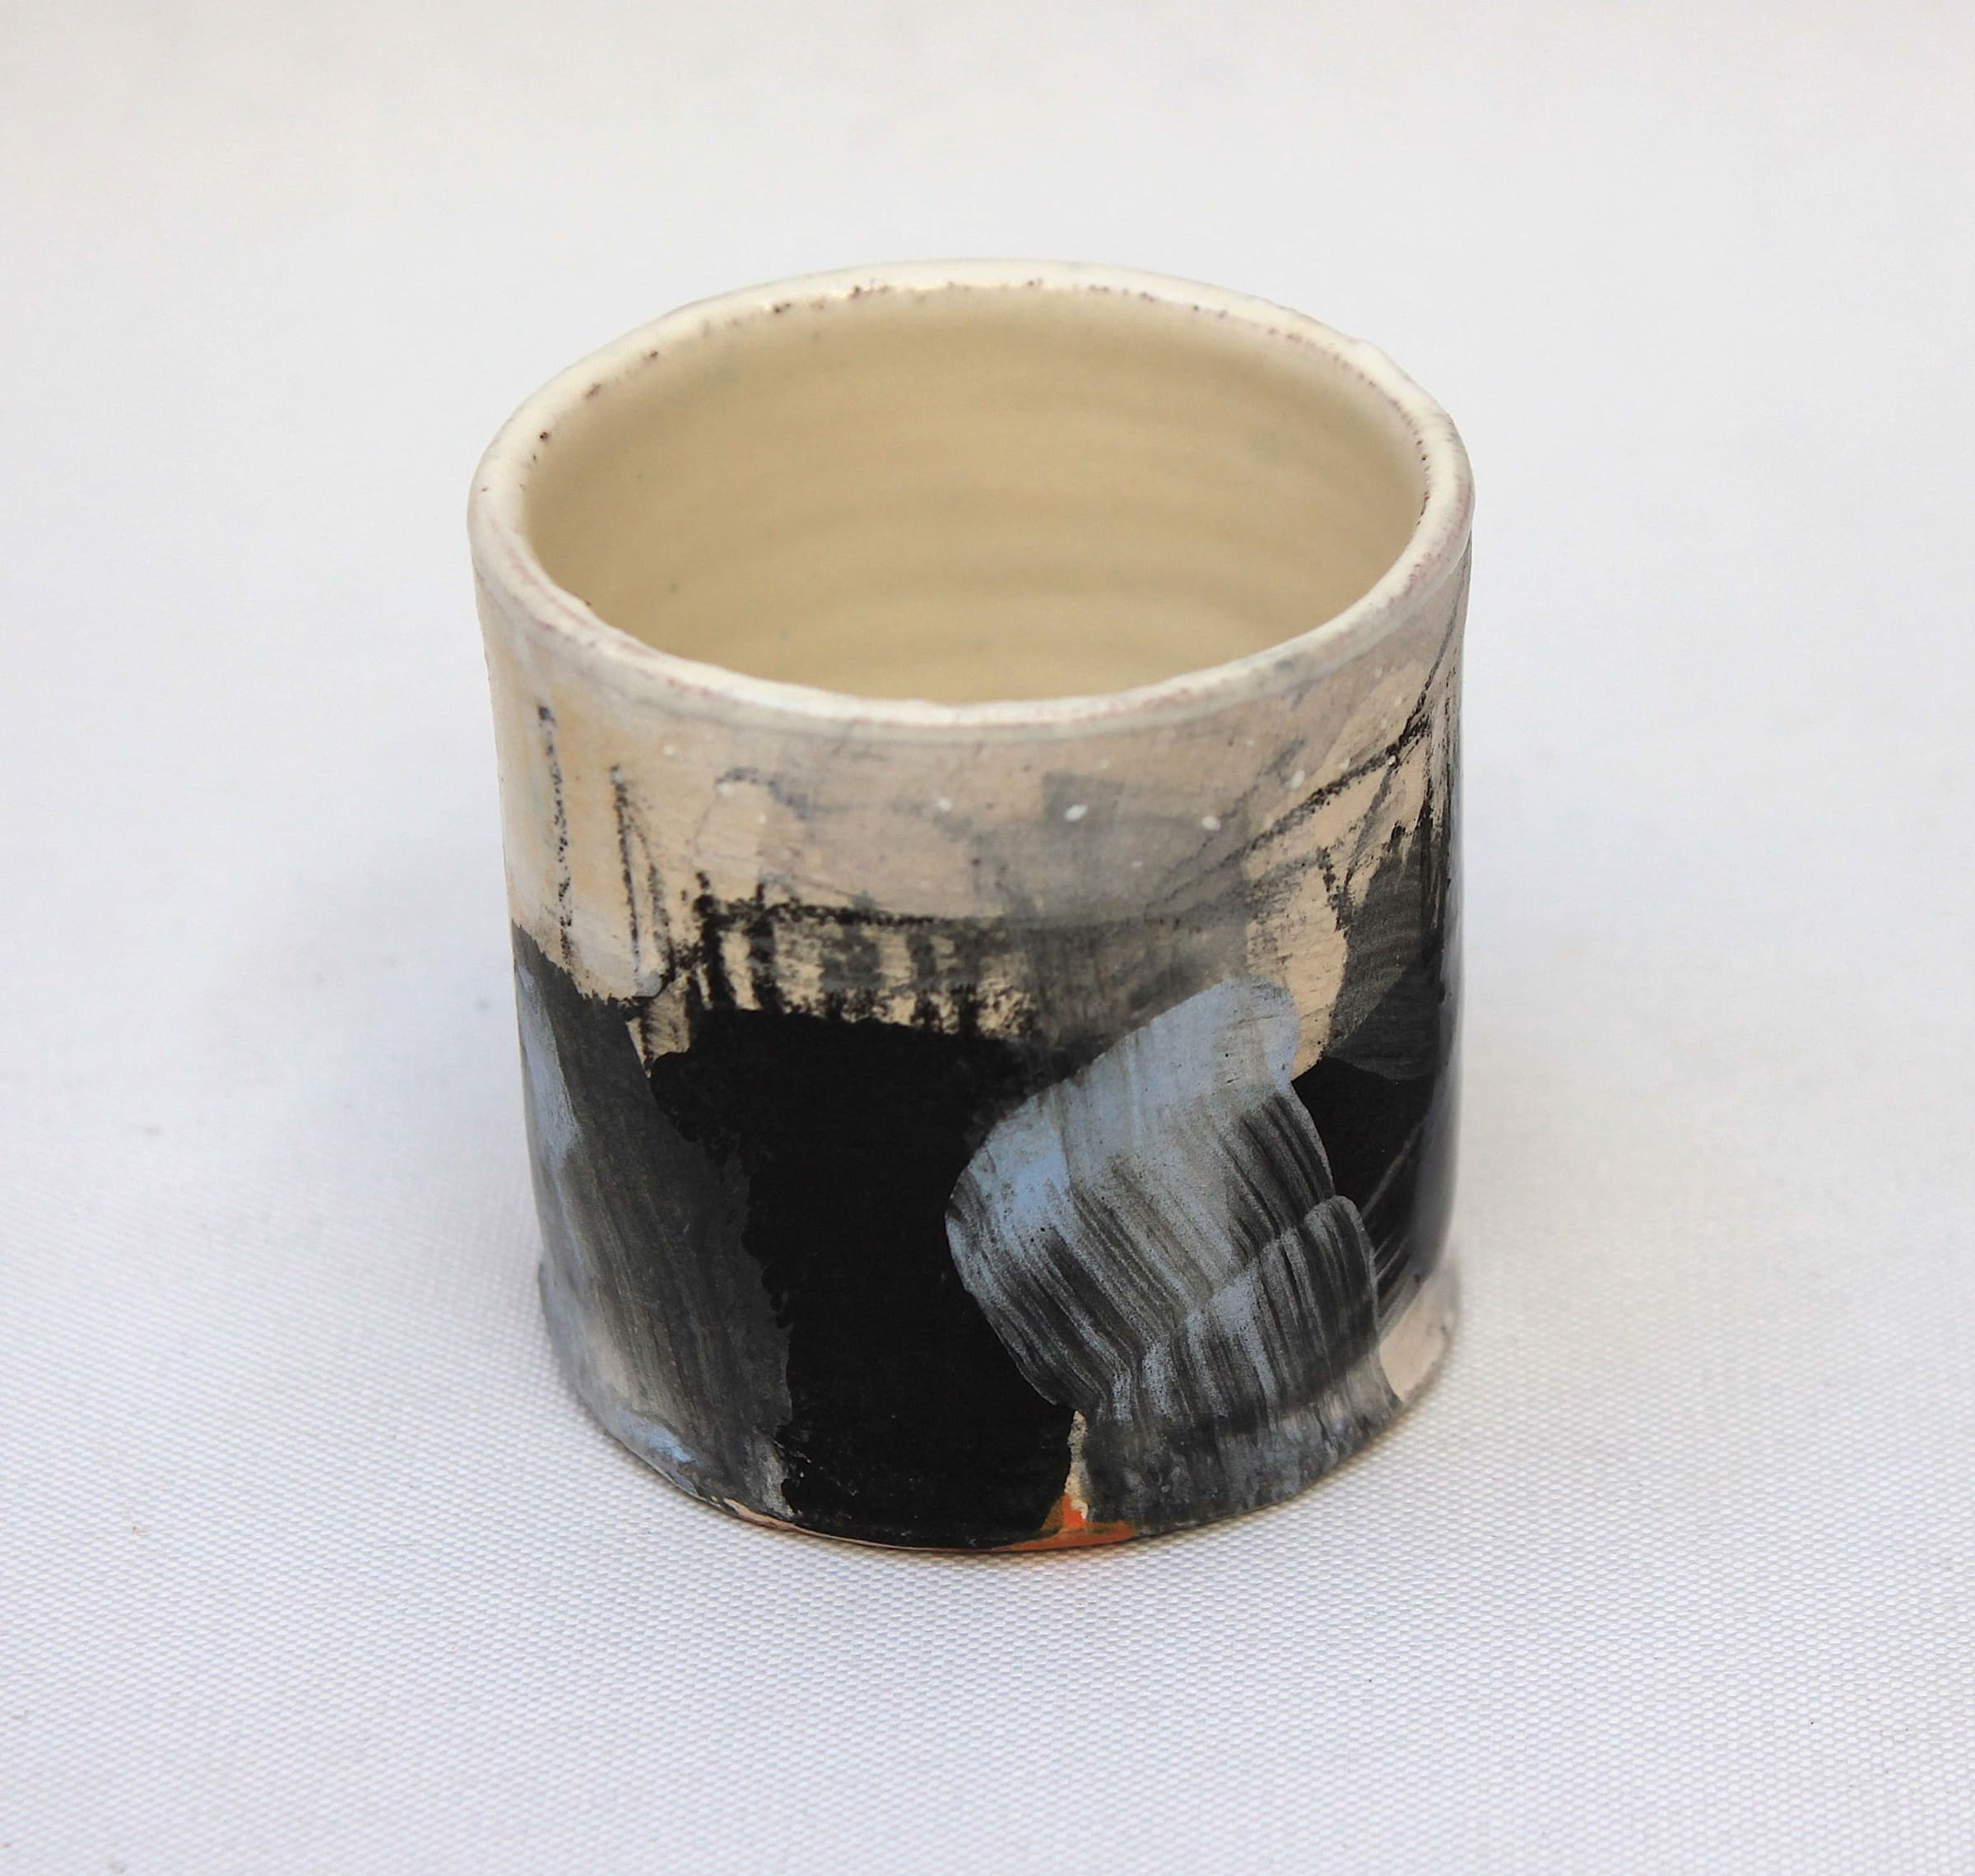 """<span class=""""link fancybox-details-link""""><a href=""""/artists/34-barry-stedman/works/4152-barry-stedman-thrown-vessel-coast-series-2017/"""">View Detail Page</a></span><div class=""""artist""""><strong>Barry Stedman</strong></div> b. 1965 <div class=""""title""""><em>Thrown Vessel 'Coast' Series</em>, 2017</div> <div class=""""signed_and_dated"""">signed by artist</div> <div class=""""medium"""">thrown and altered earthenware, decorated with slips</div> <div class=""""dimensions"""">6 x 5 cm<br /> 2 3/8 x 2 inches</div><div class=""""price"""">£90.00</div>"""